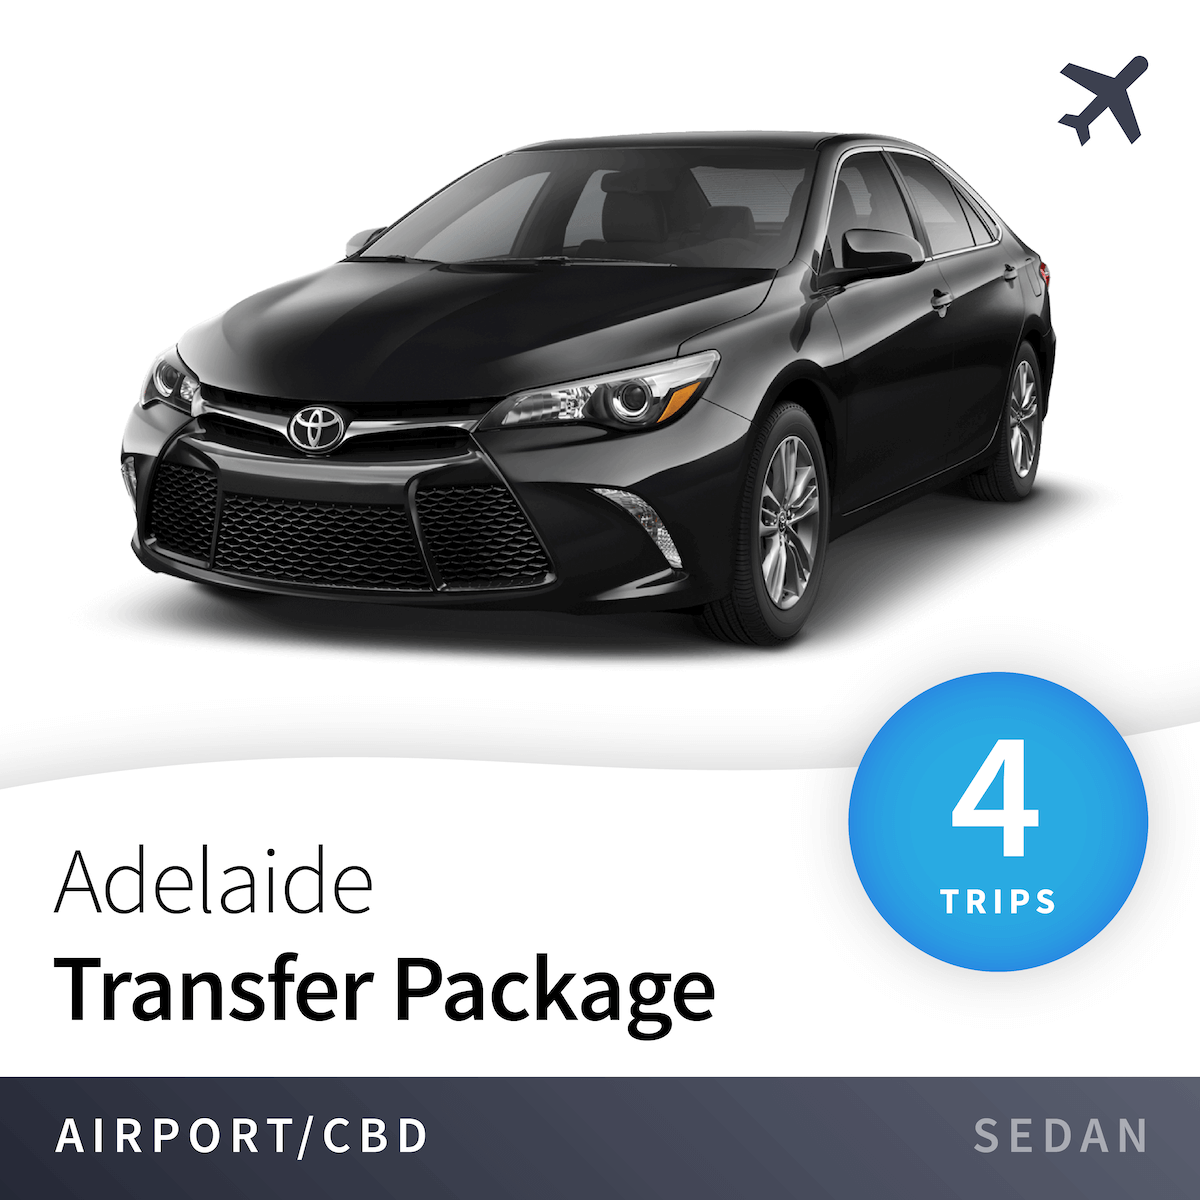 Adelaide Airport Transfer Package - Sedan (4 Trips) 13